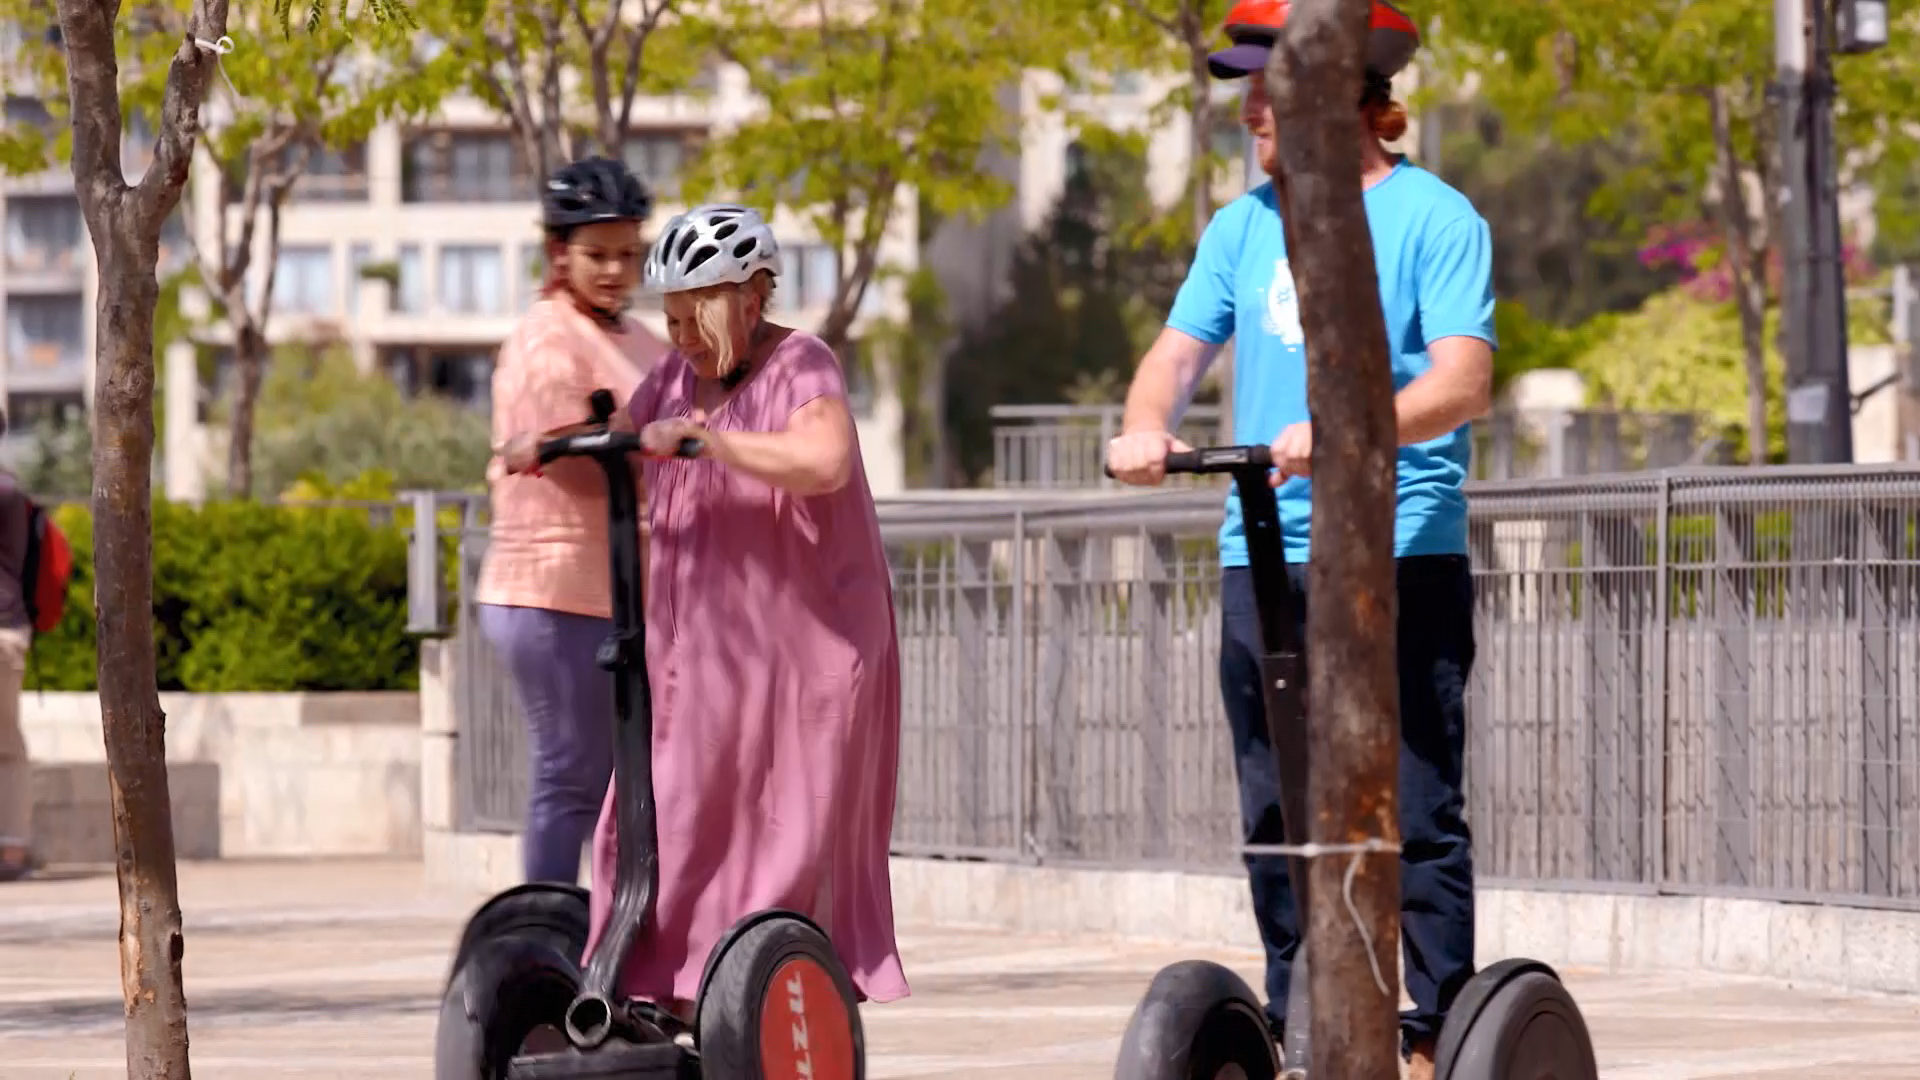 Cath stacks it on a segway